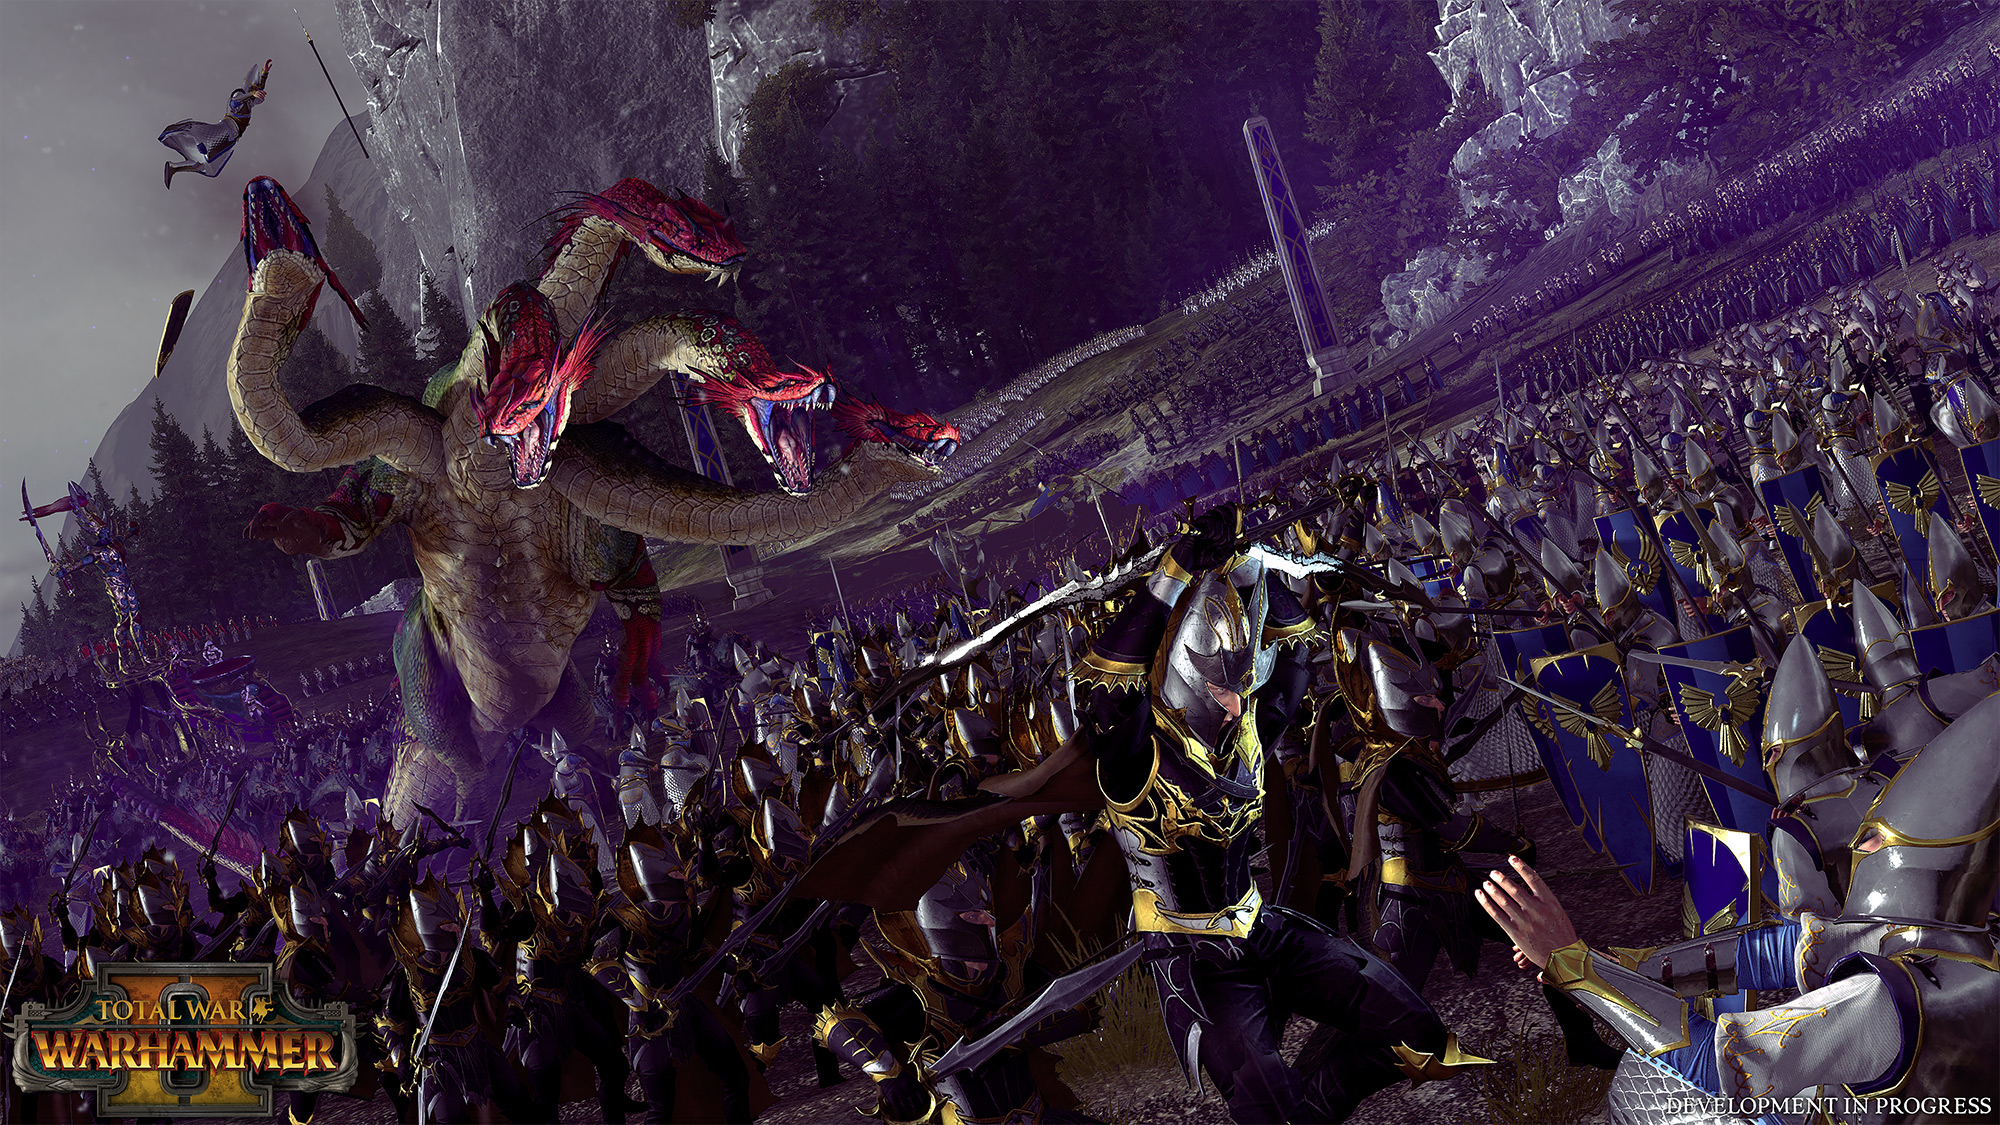 Total War: Warhammer 2 Dark Elves revealed in new trailer and shots